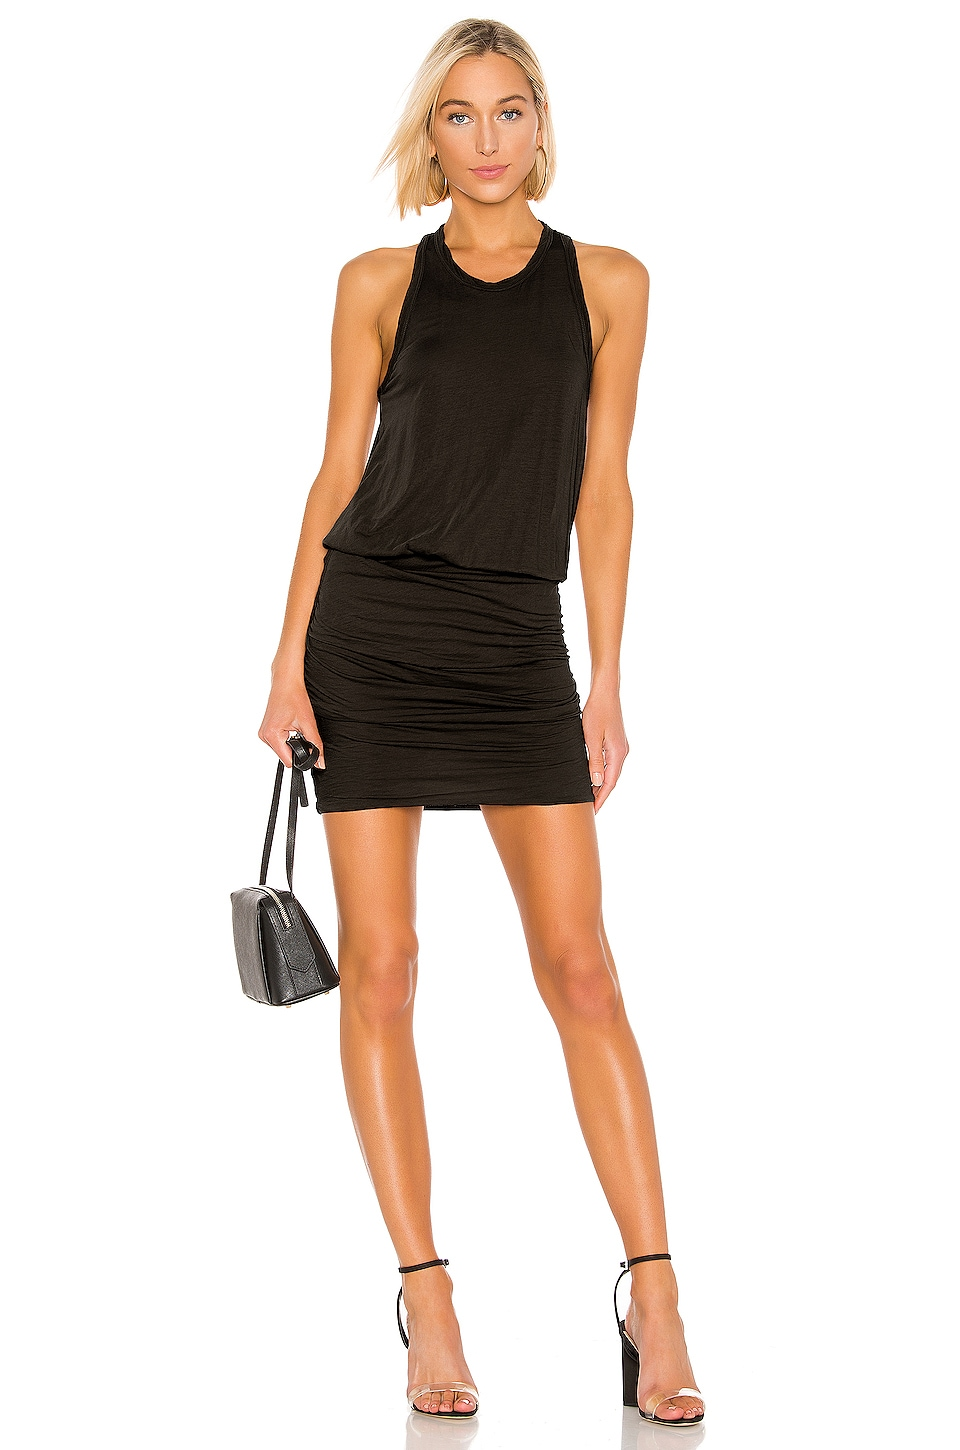 James Perse Racerback Blouson Dress in Carbon